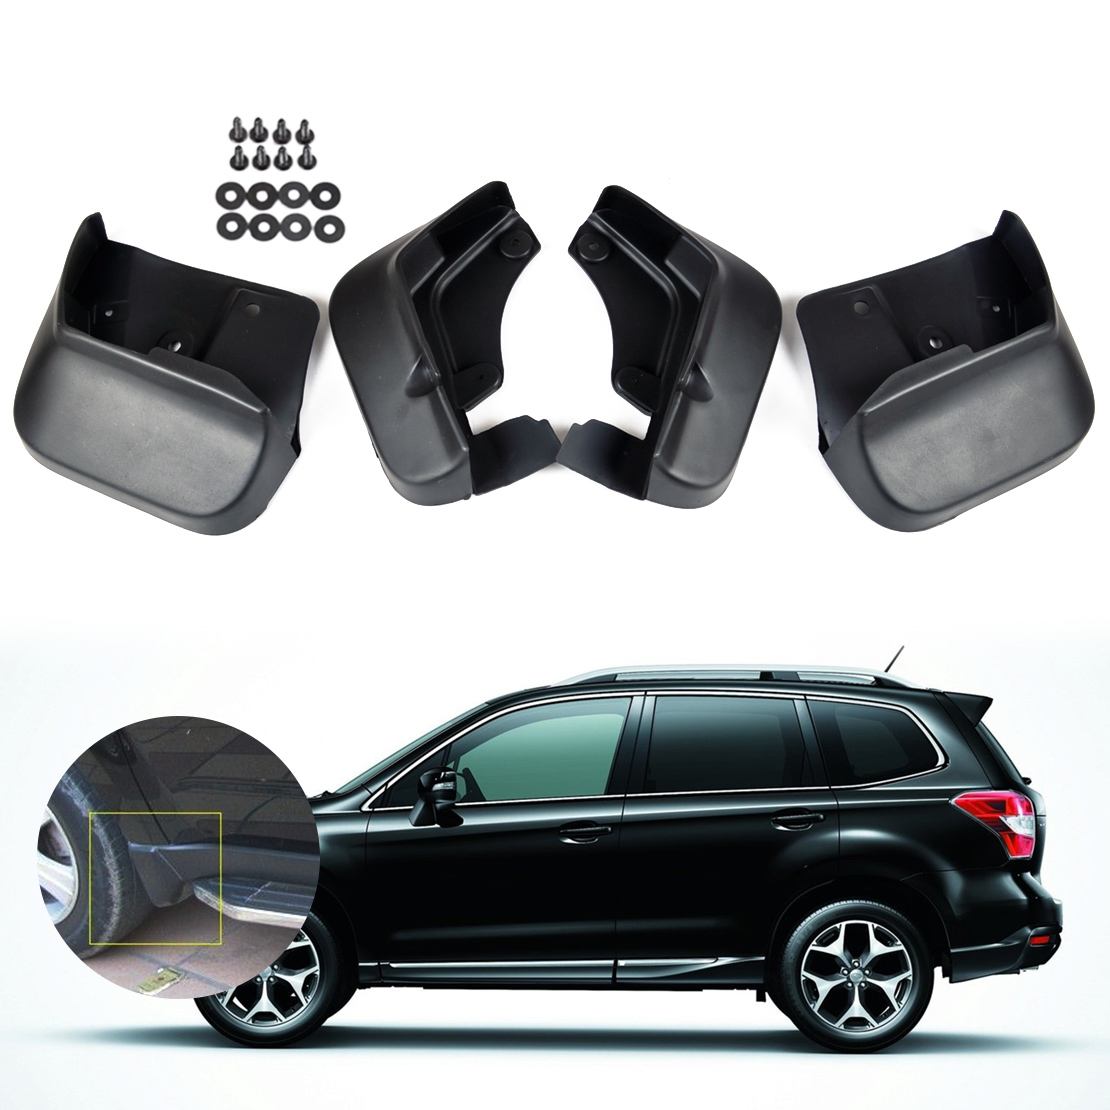 DWCX 4pcs Mud Flaps Splash Guards Mudguard Mudflaps Fender For Subaru Forester 2008 2009 2010 2011 2012 2013 все цены